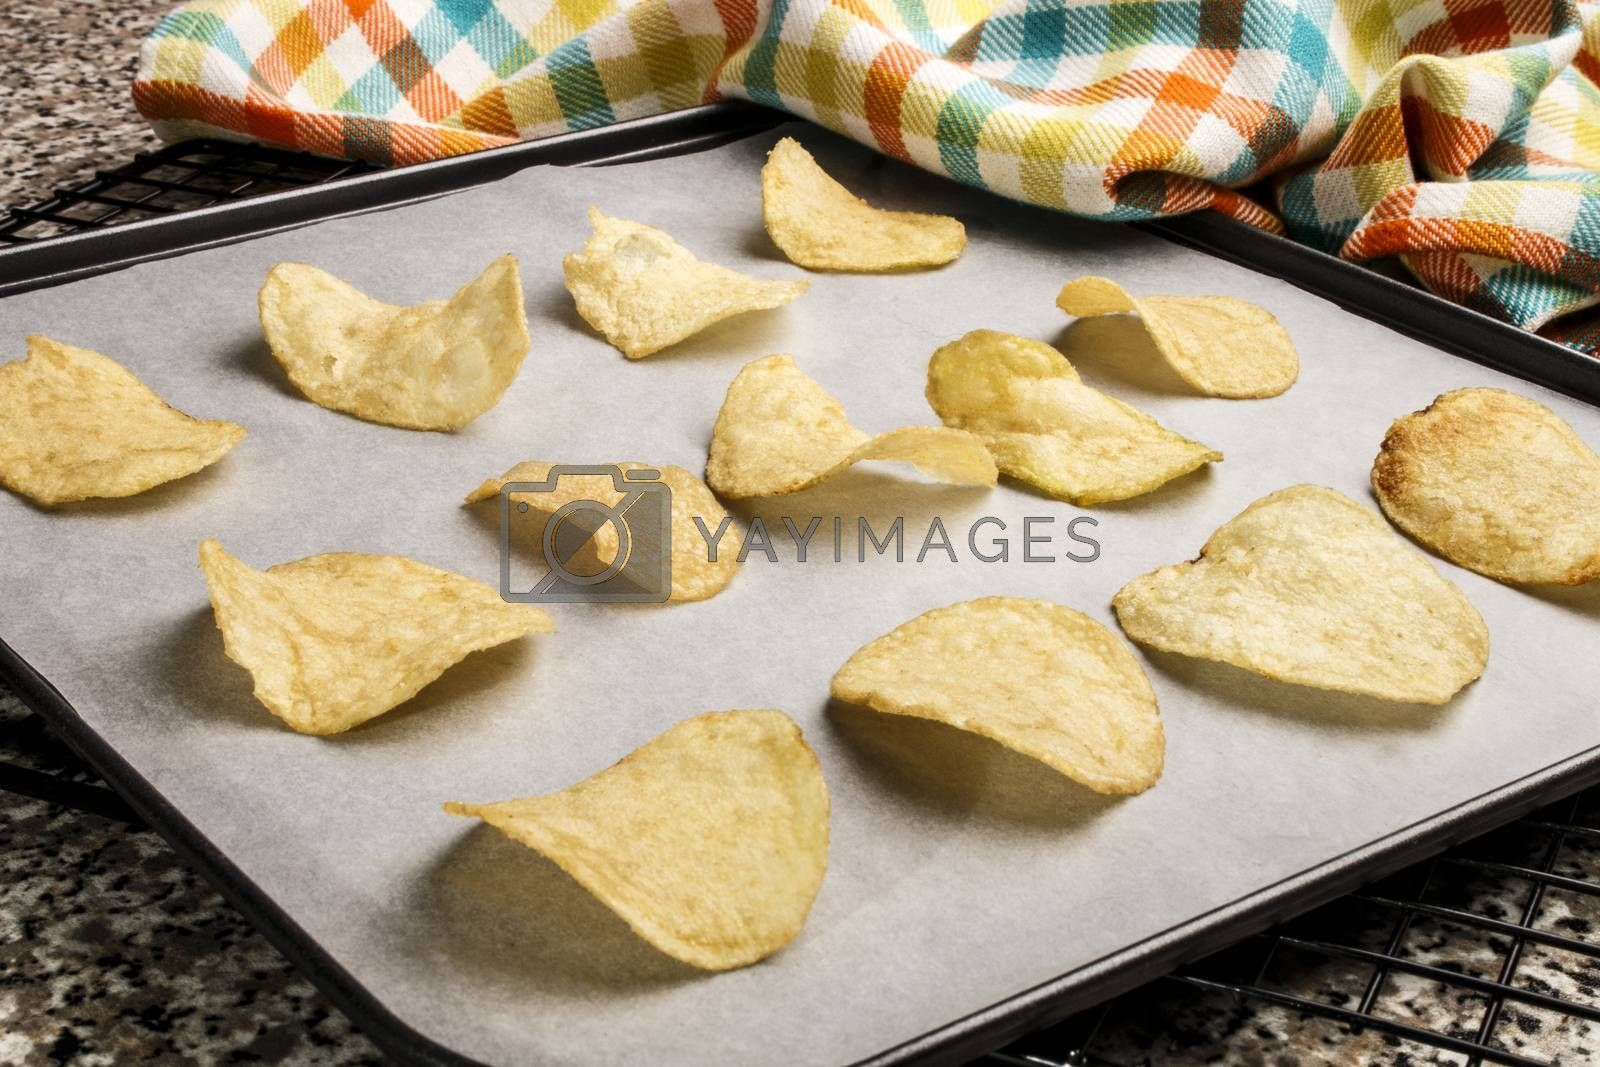 homemade potato chips on a baking tray with white paper